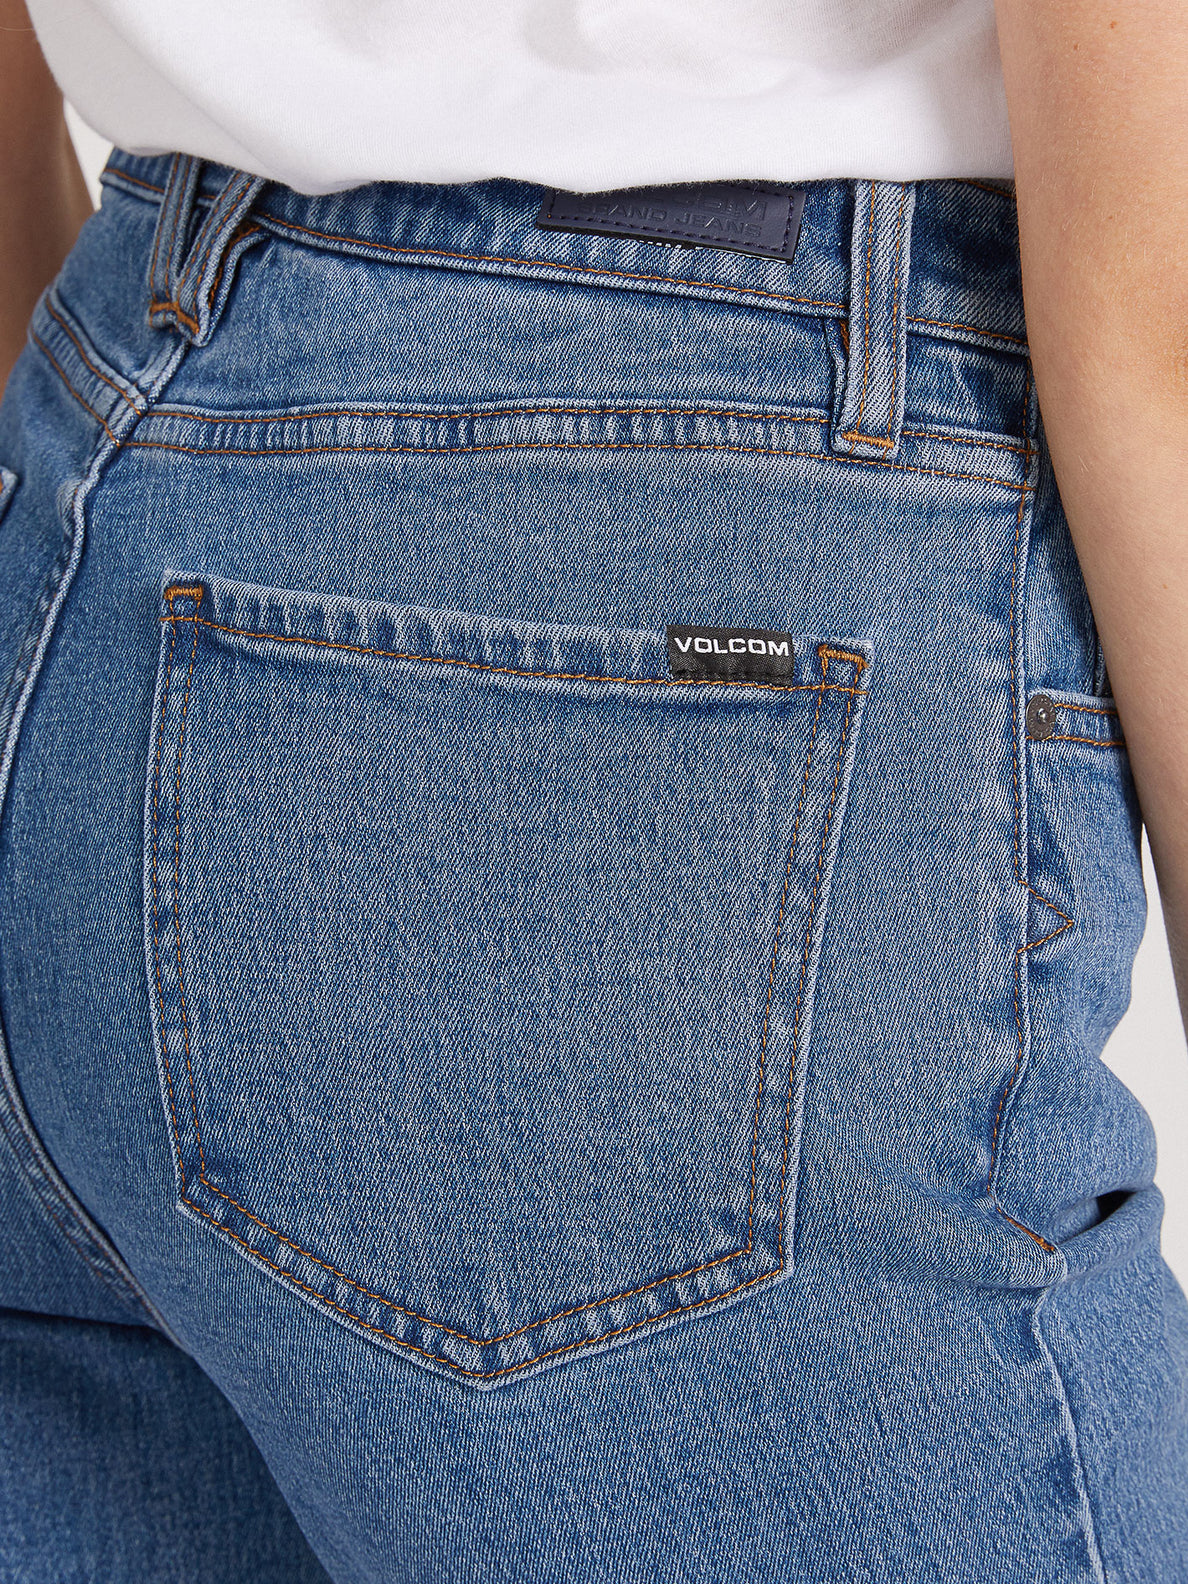 Stoned Straight Pant - Standard Issue Blue (B1912000_SDB) [51]